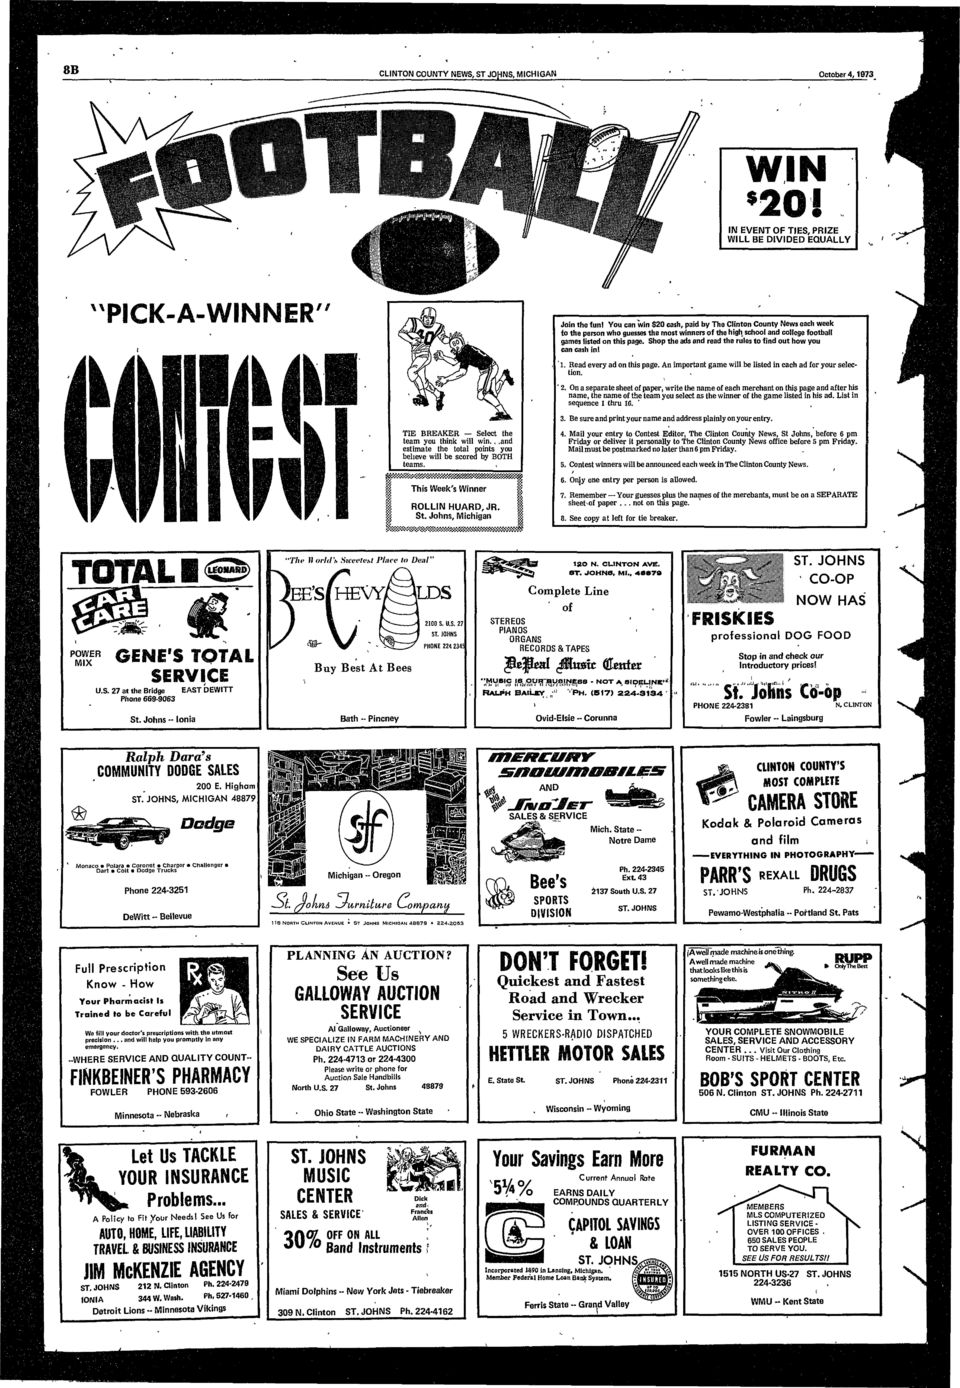 You can wn $20 cash, pad by The Clnton County News each week to the person who guesses the most wnners of the hgh school and college football games lsted on ths page.